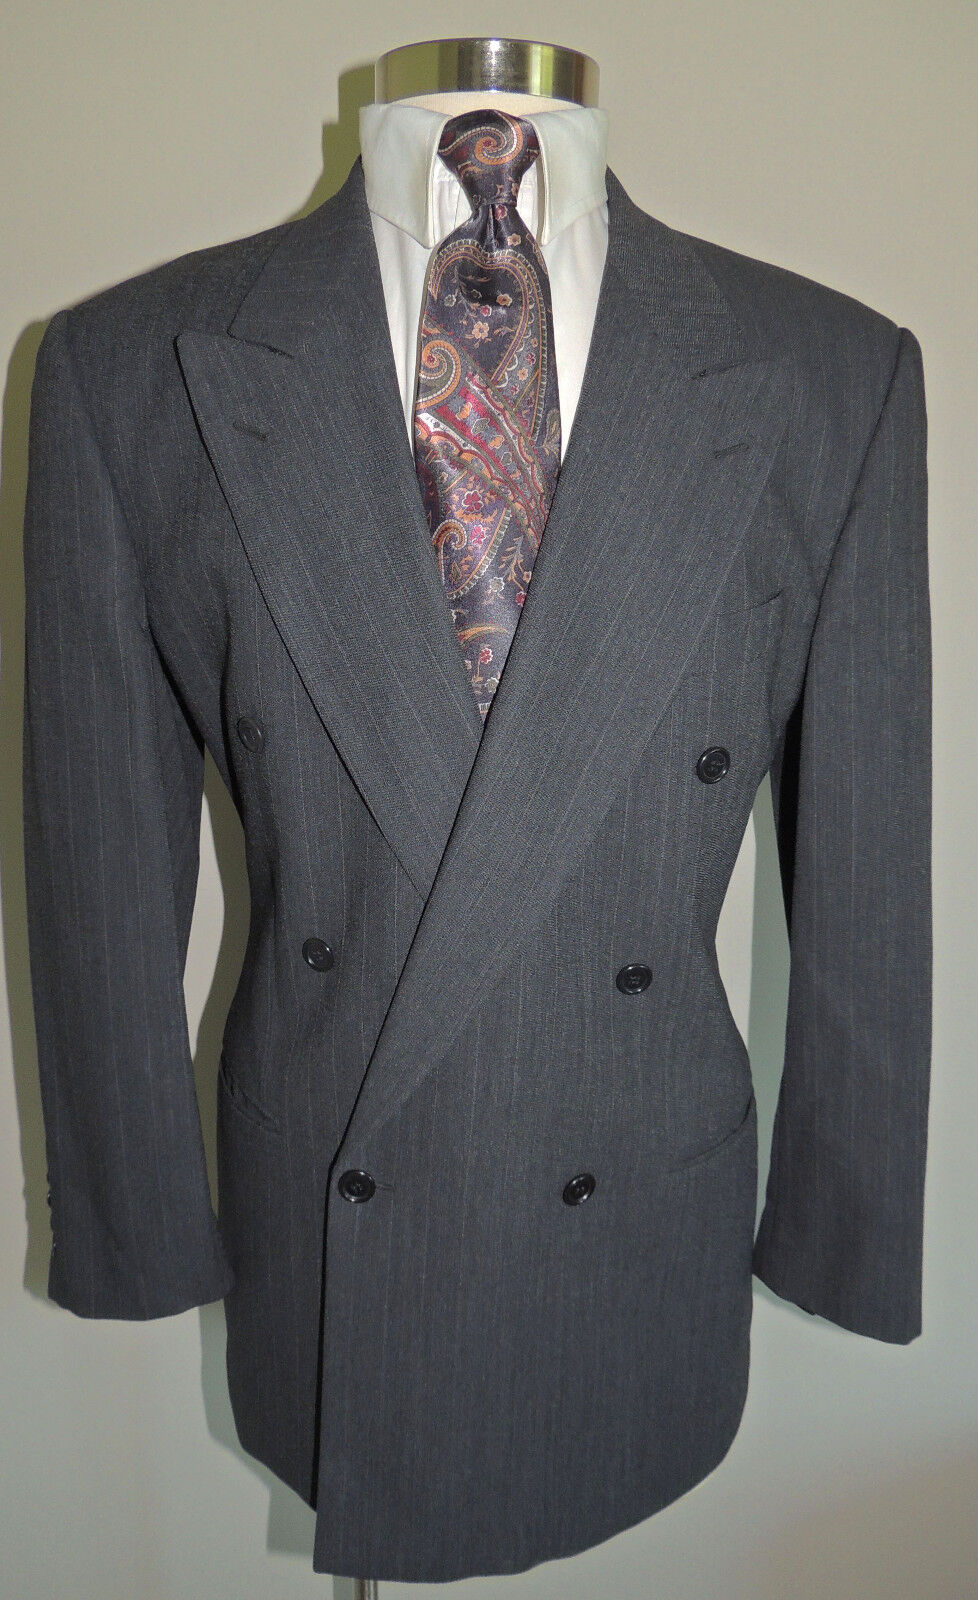 VALINTINO men CHARCOAL PINSTRIPE DOUBLE BREASTED WOOL SPORT COAT 40R